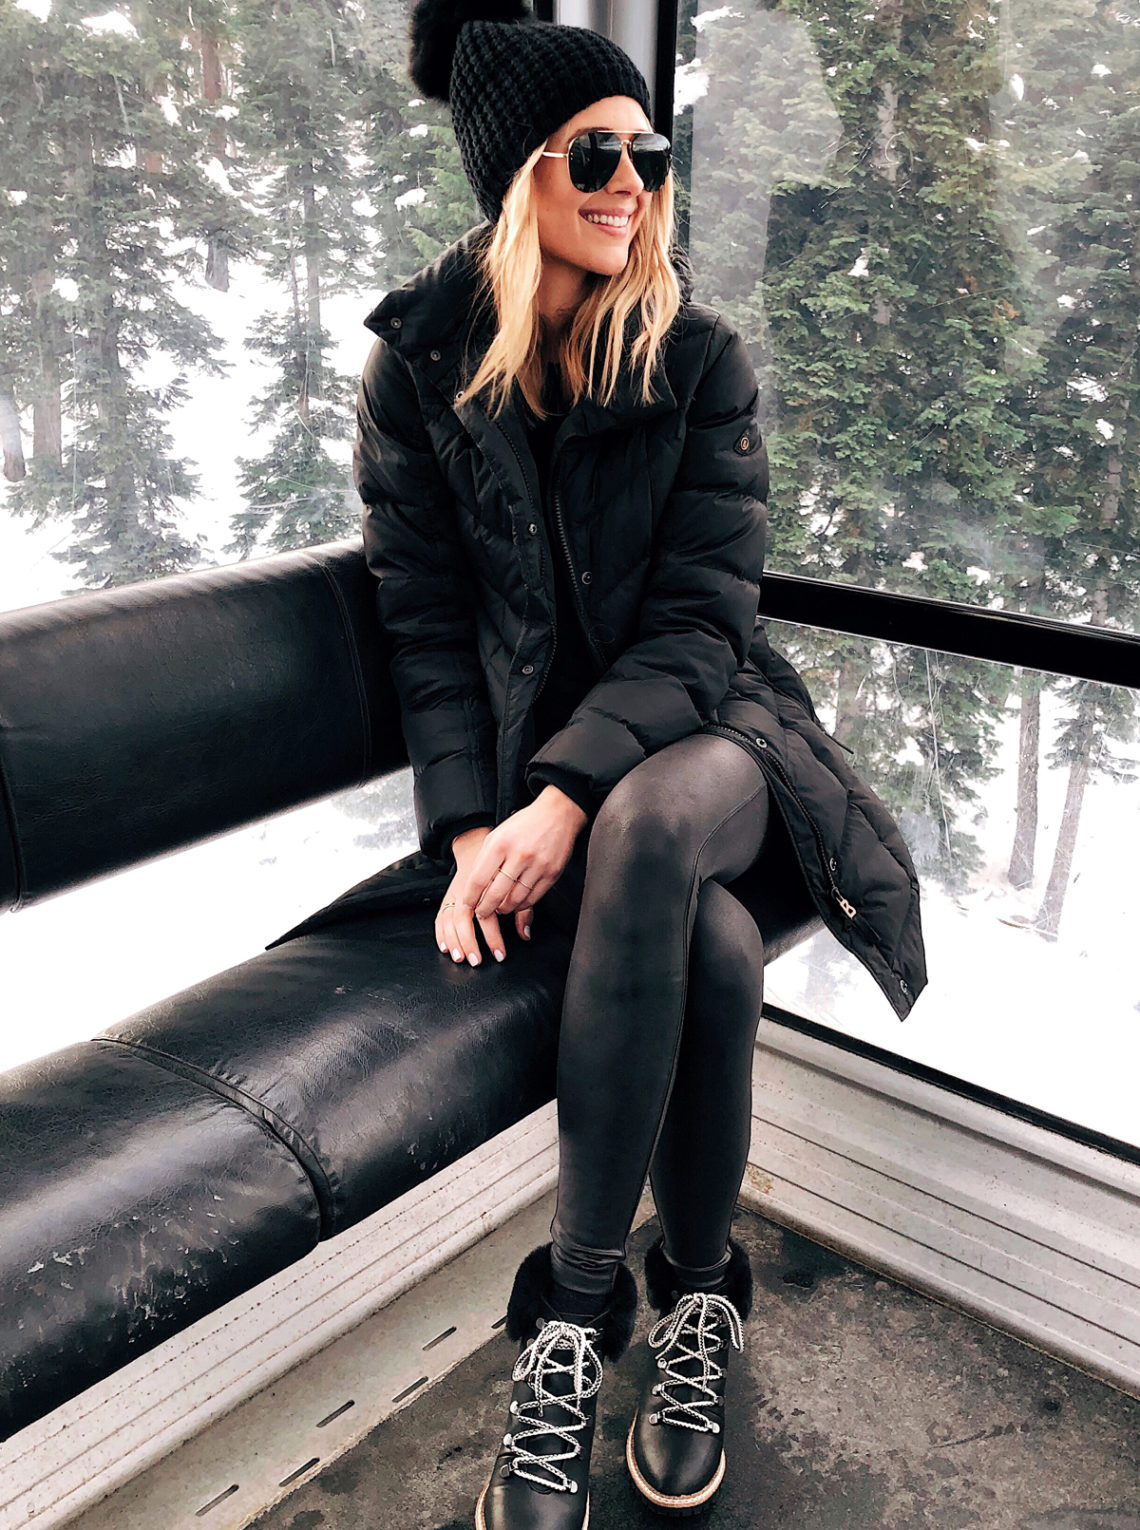 Fashion-Jackson-Wearing-Bogner-Black-Jacet-Spanx-Faux-Leather-Leggings-Black-Winter-Boots-Black-Beanie-Winter-Outfit